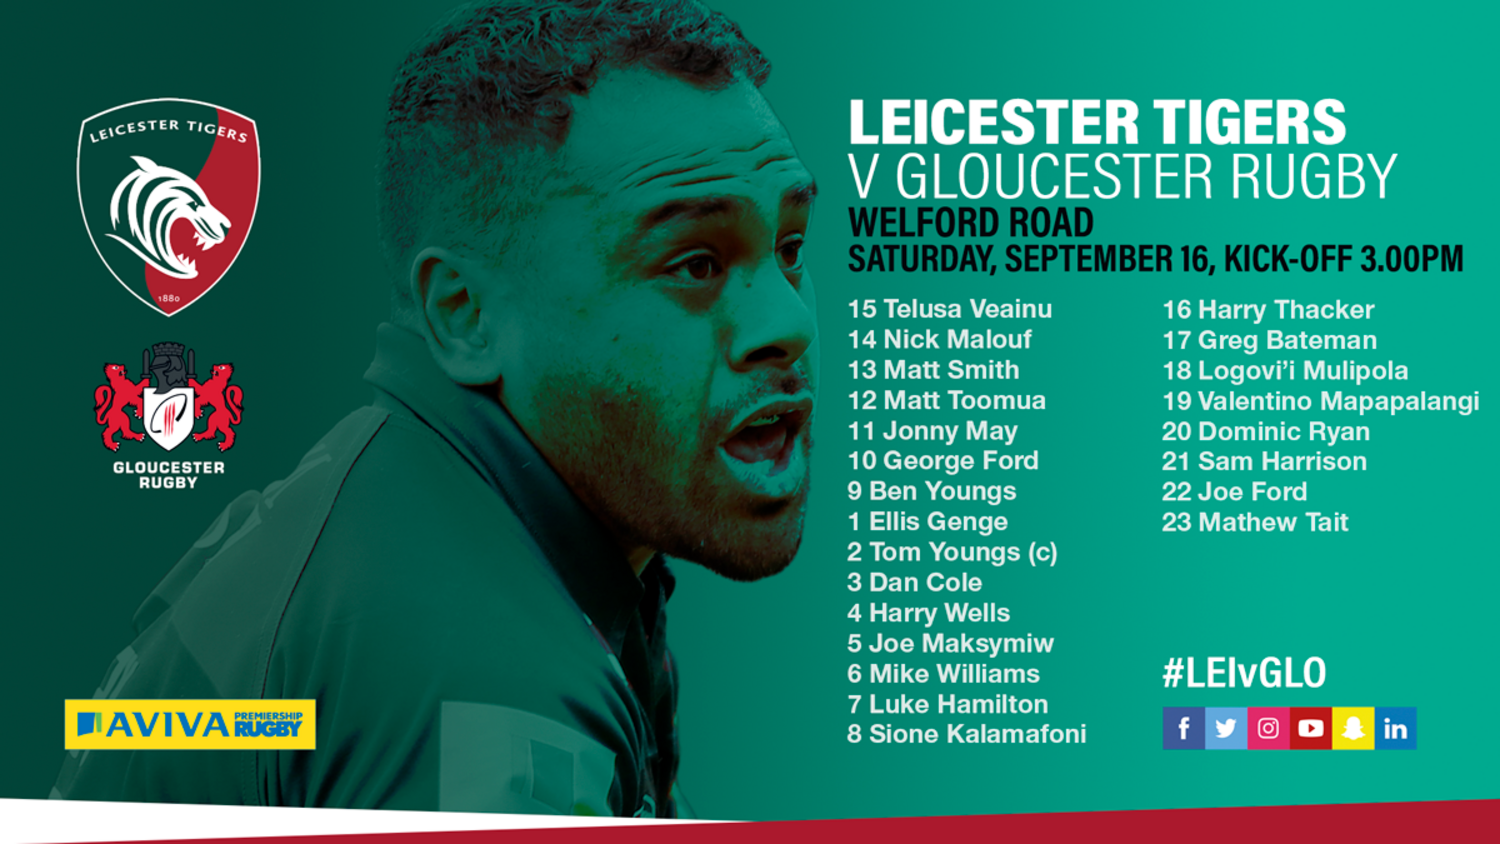 Leicester Tigers team